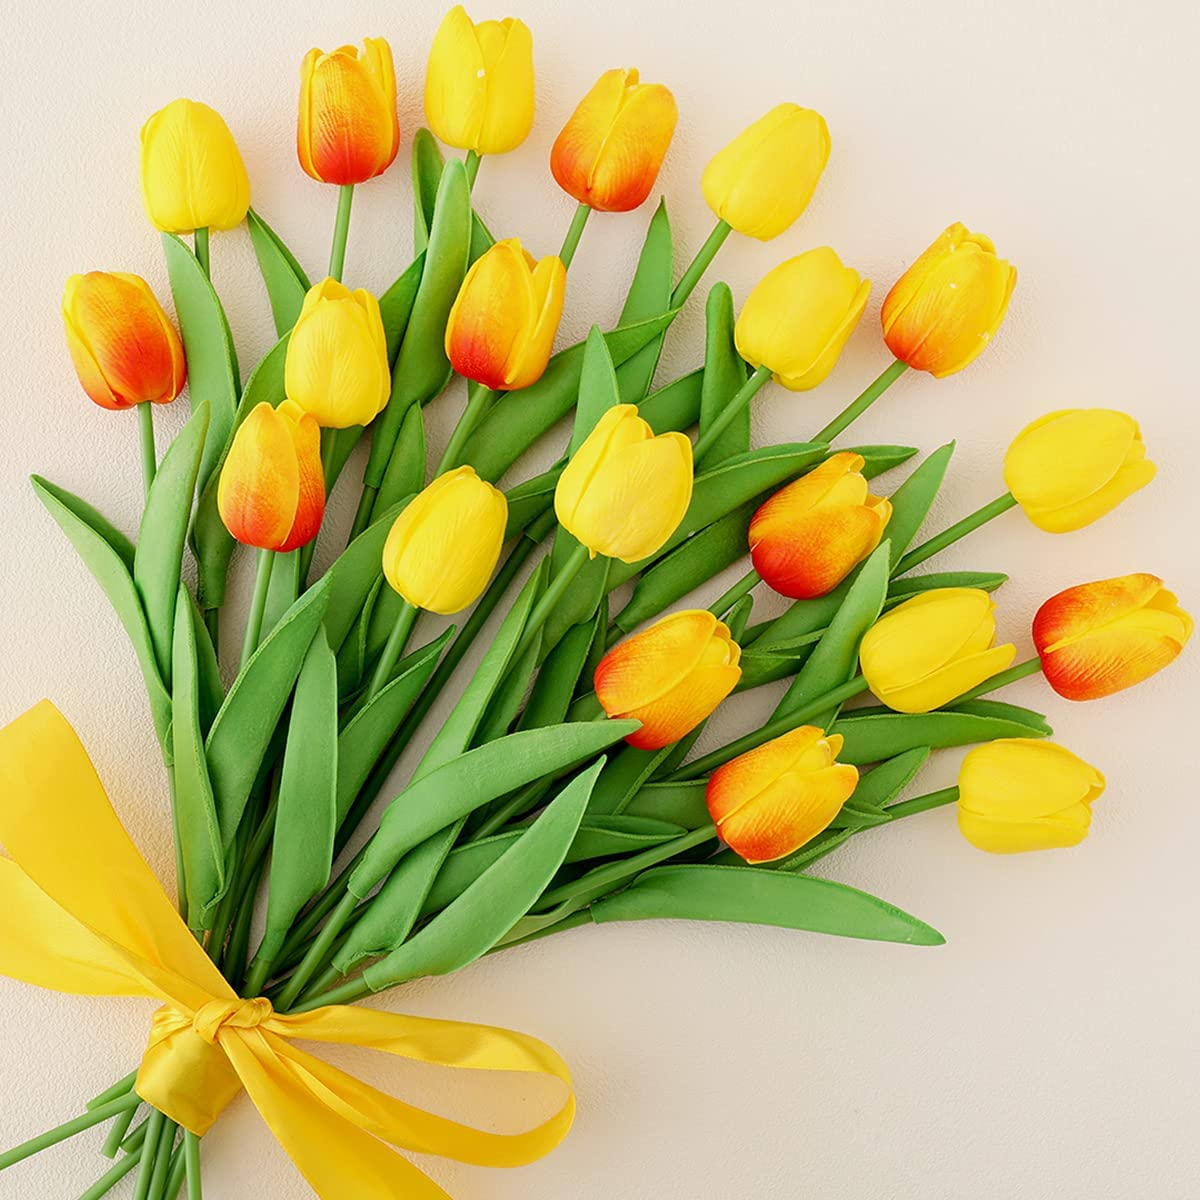 Cloudecor Discount mail order unisex 20Pcs Artificial Tulips Flowers Touch Real